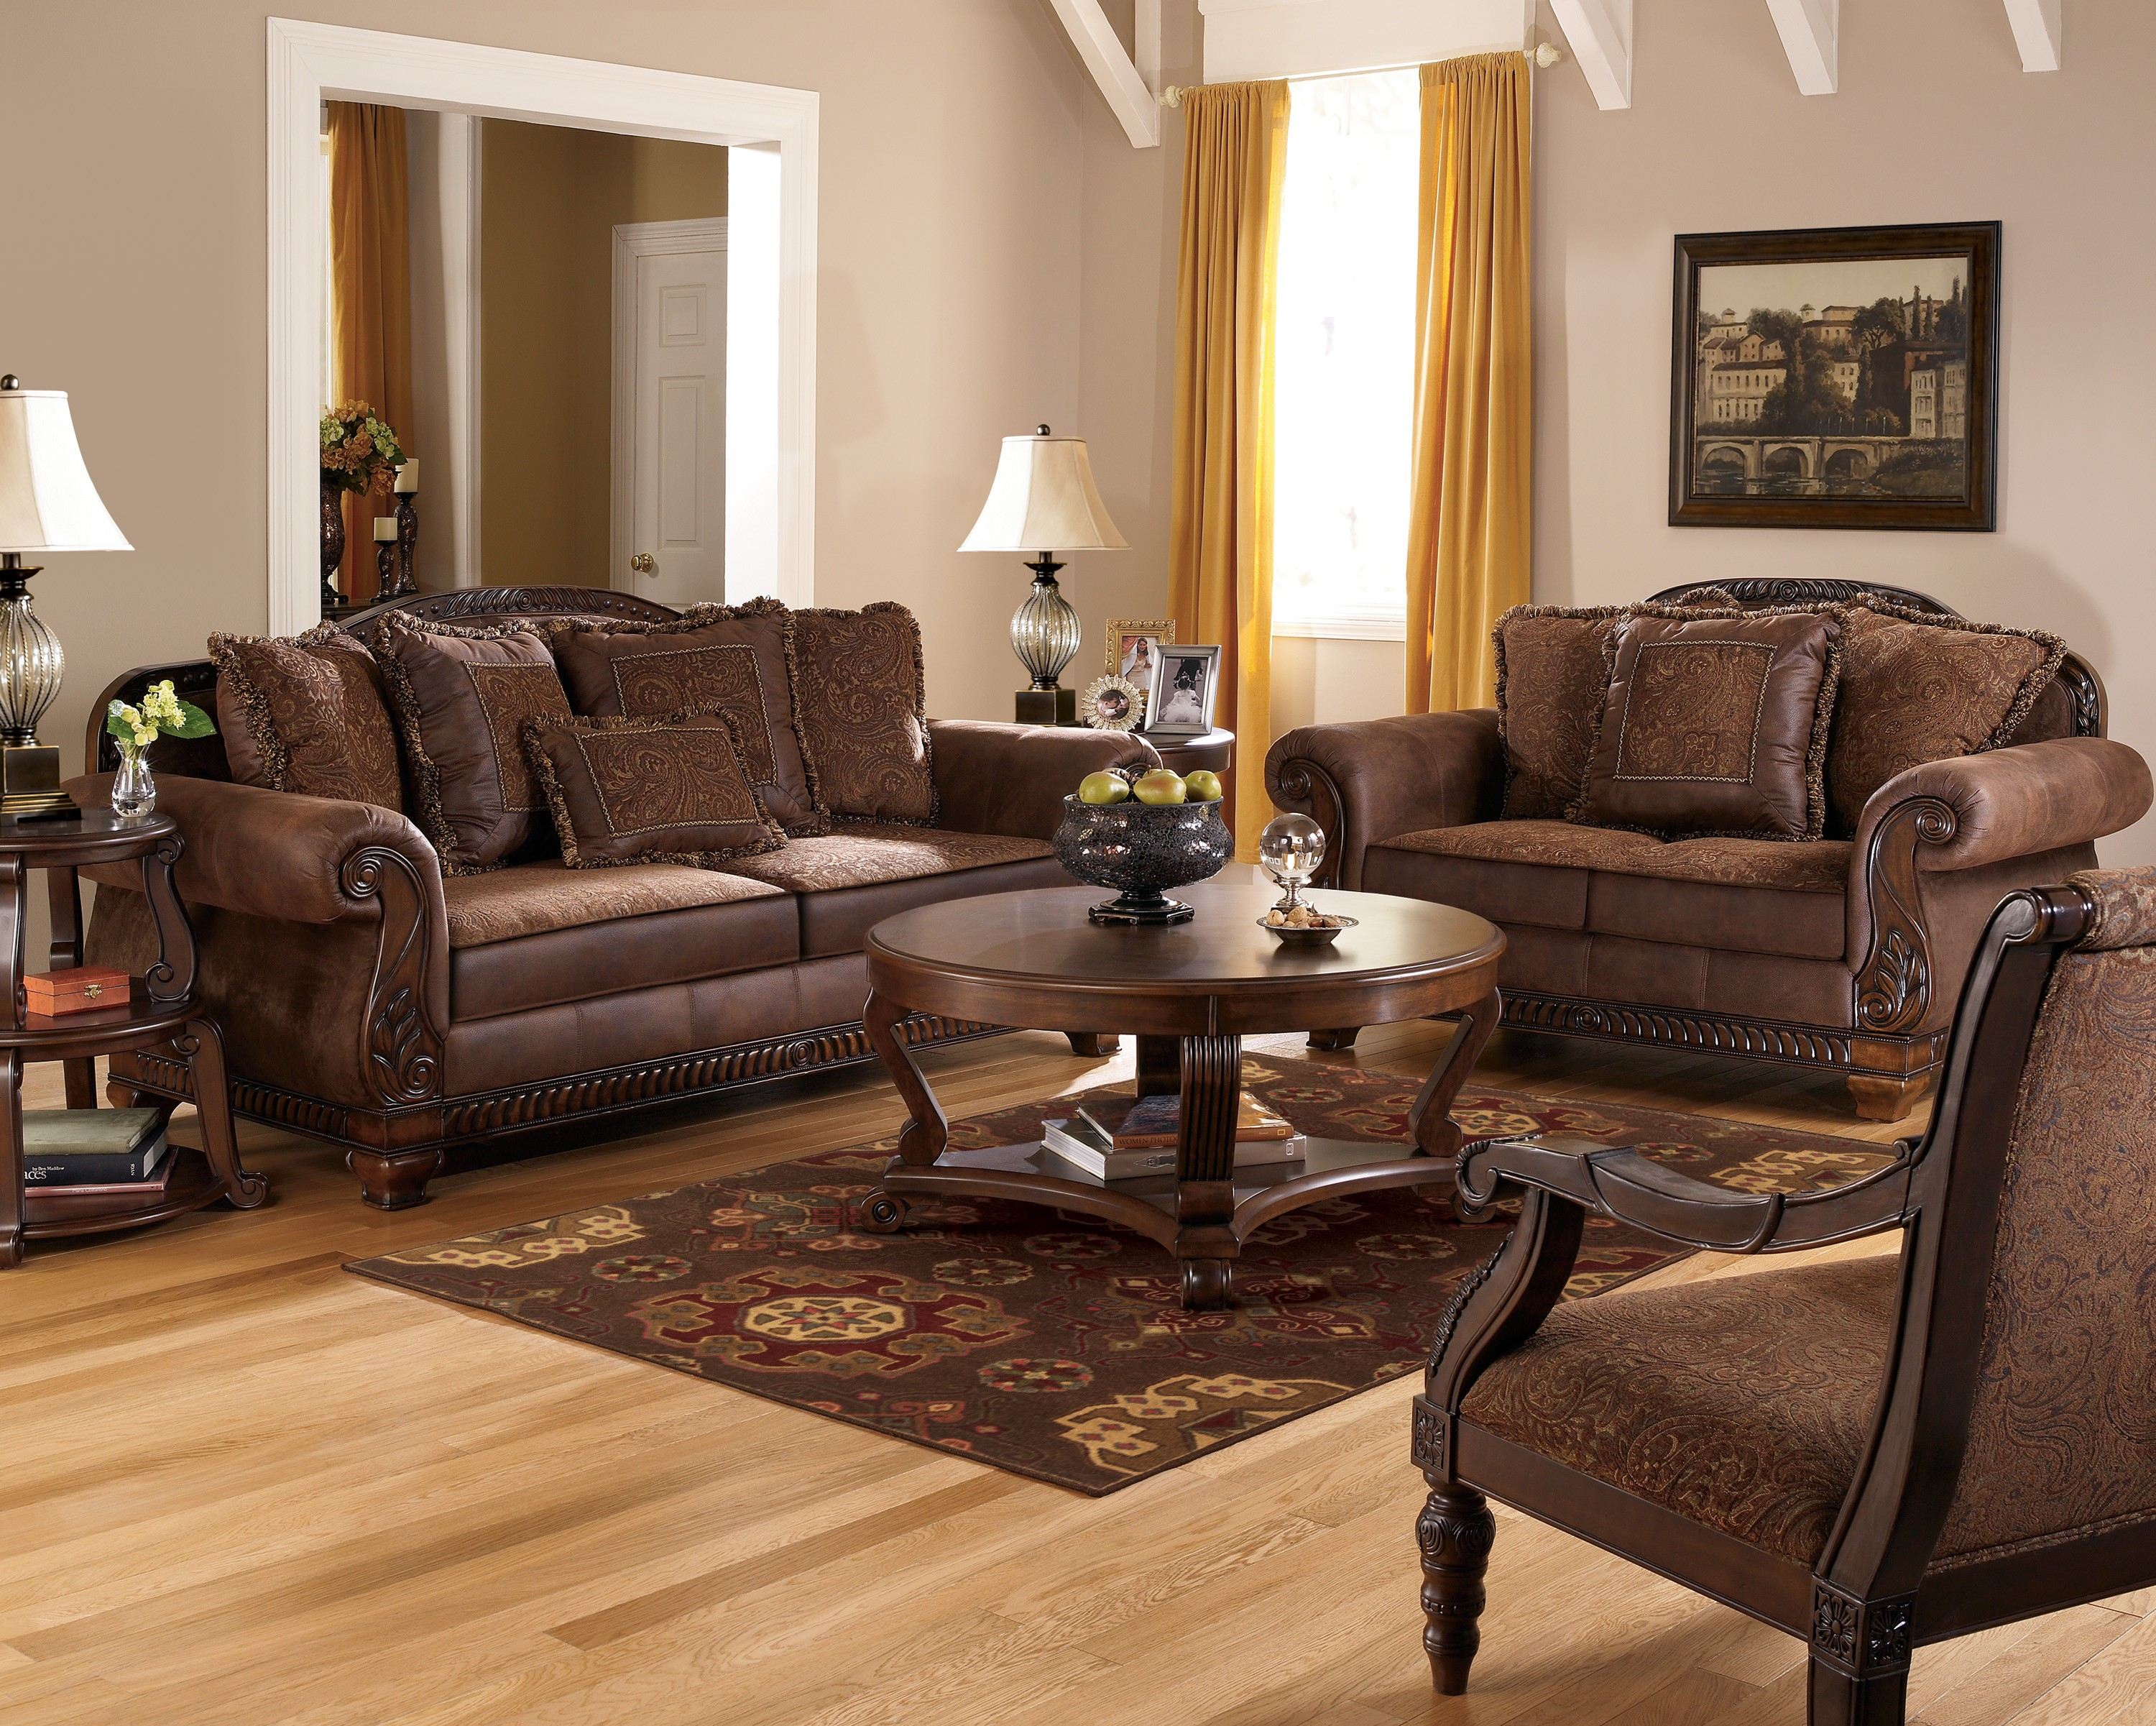 Rent A Center Living Room Furniture Living Room with regard to 11 Clever Initiatives of How to Build Rent A Center Living Room Sets